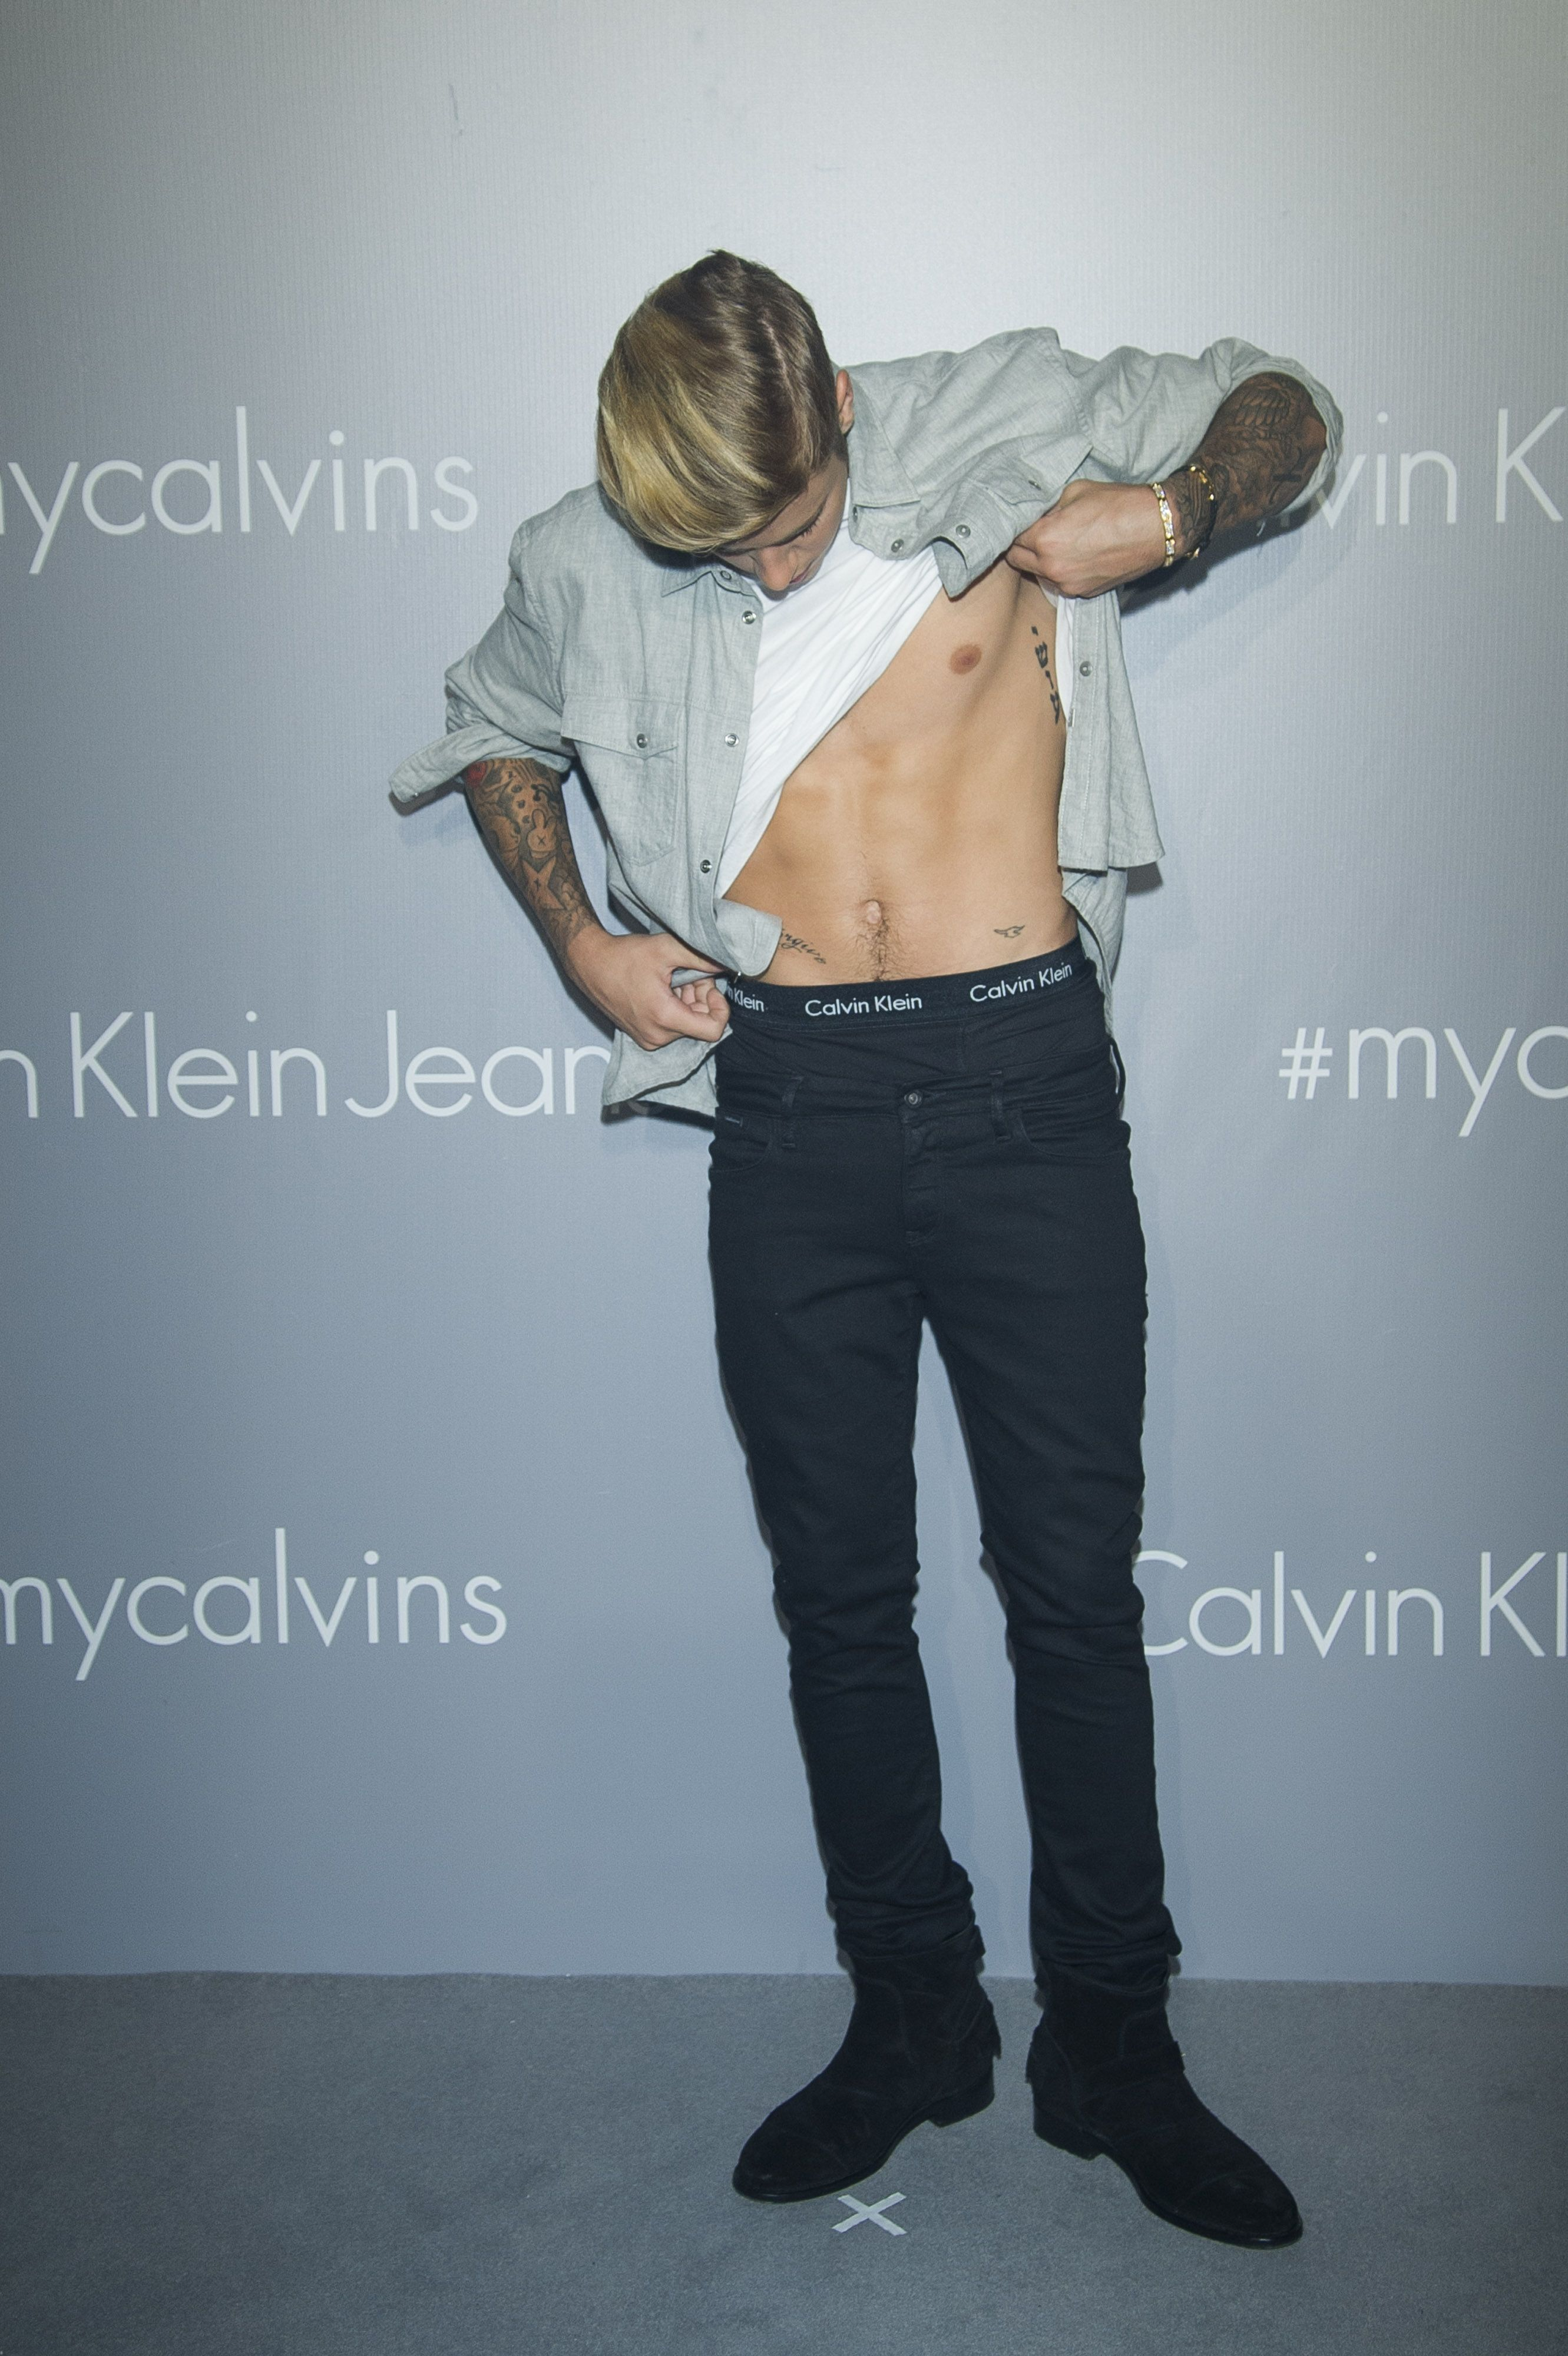 Justin Bieber showed off a lot more than just his singing voice at a recent Calvin Klein event in Hong Kong. See more of his steamy snaps, including ones that feature his impressive abs.